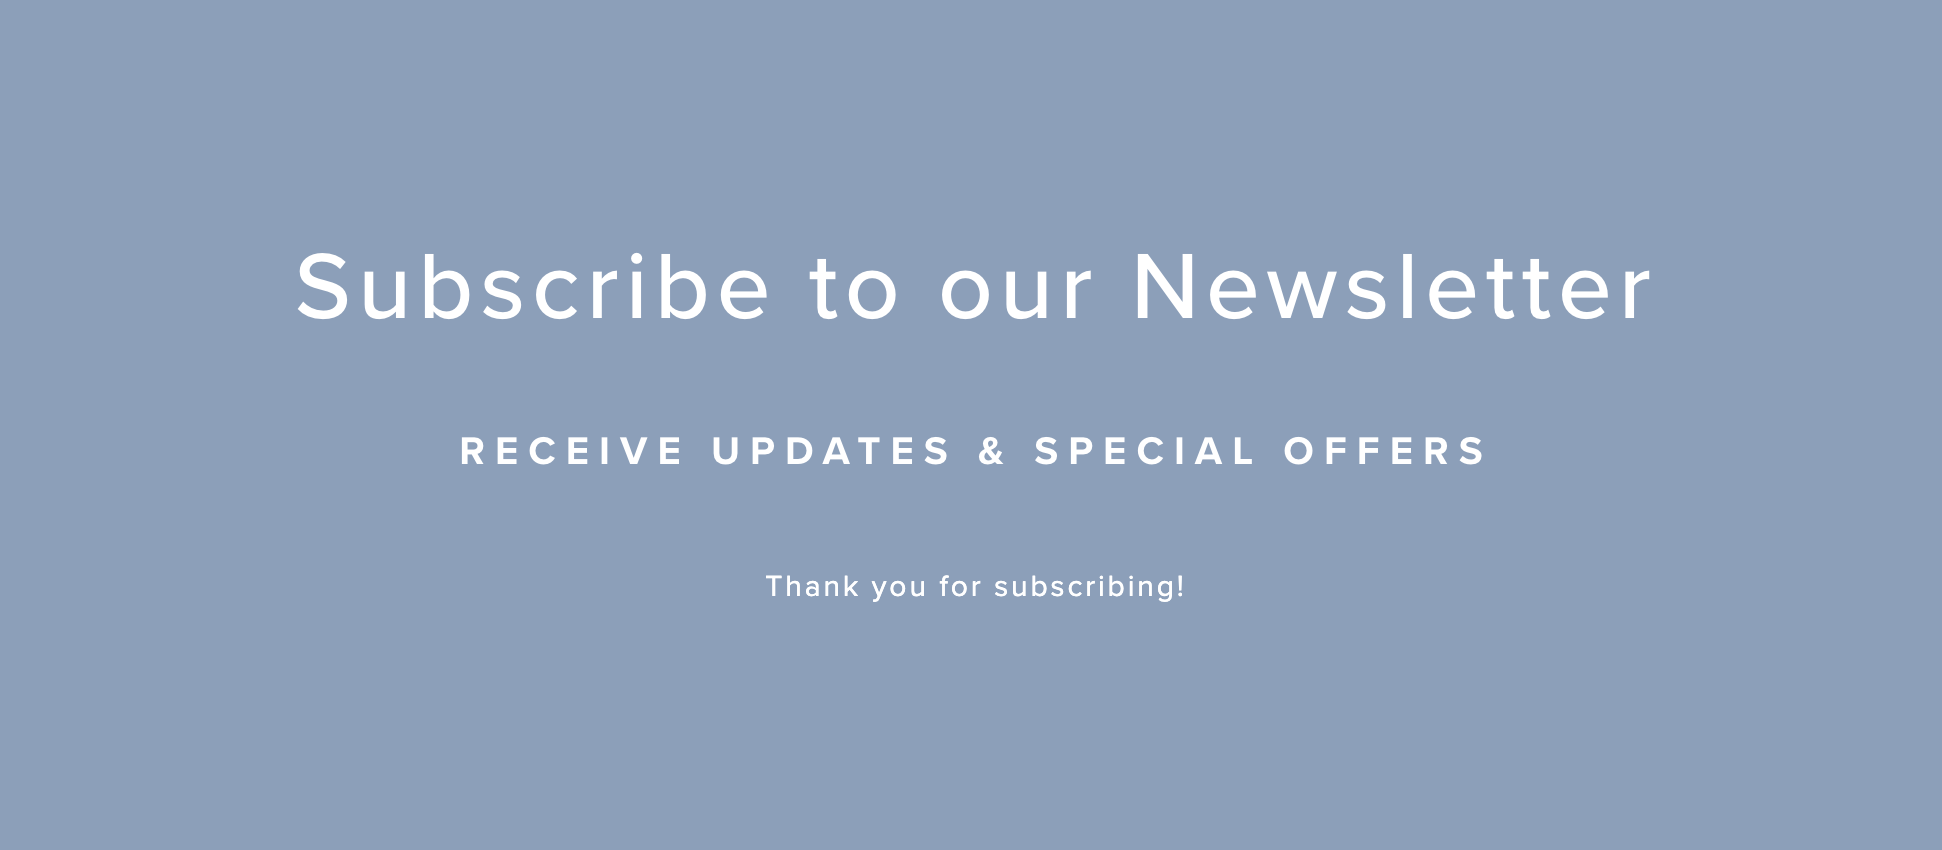 newsletter post-submit message in Squarespace